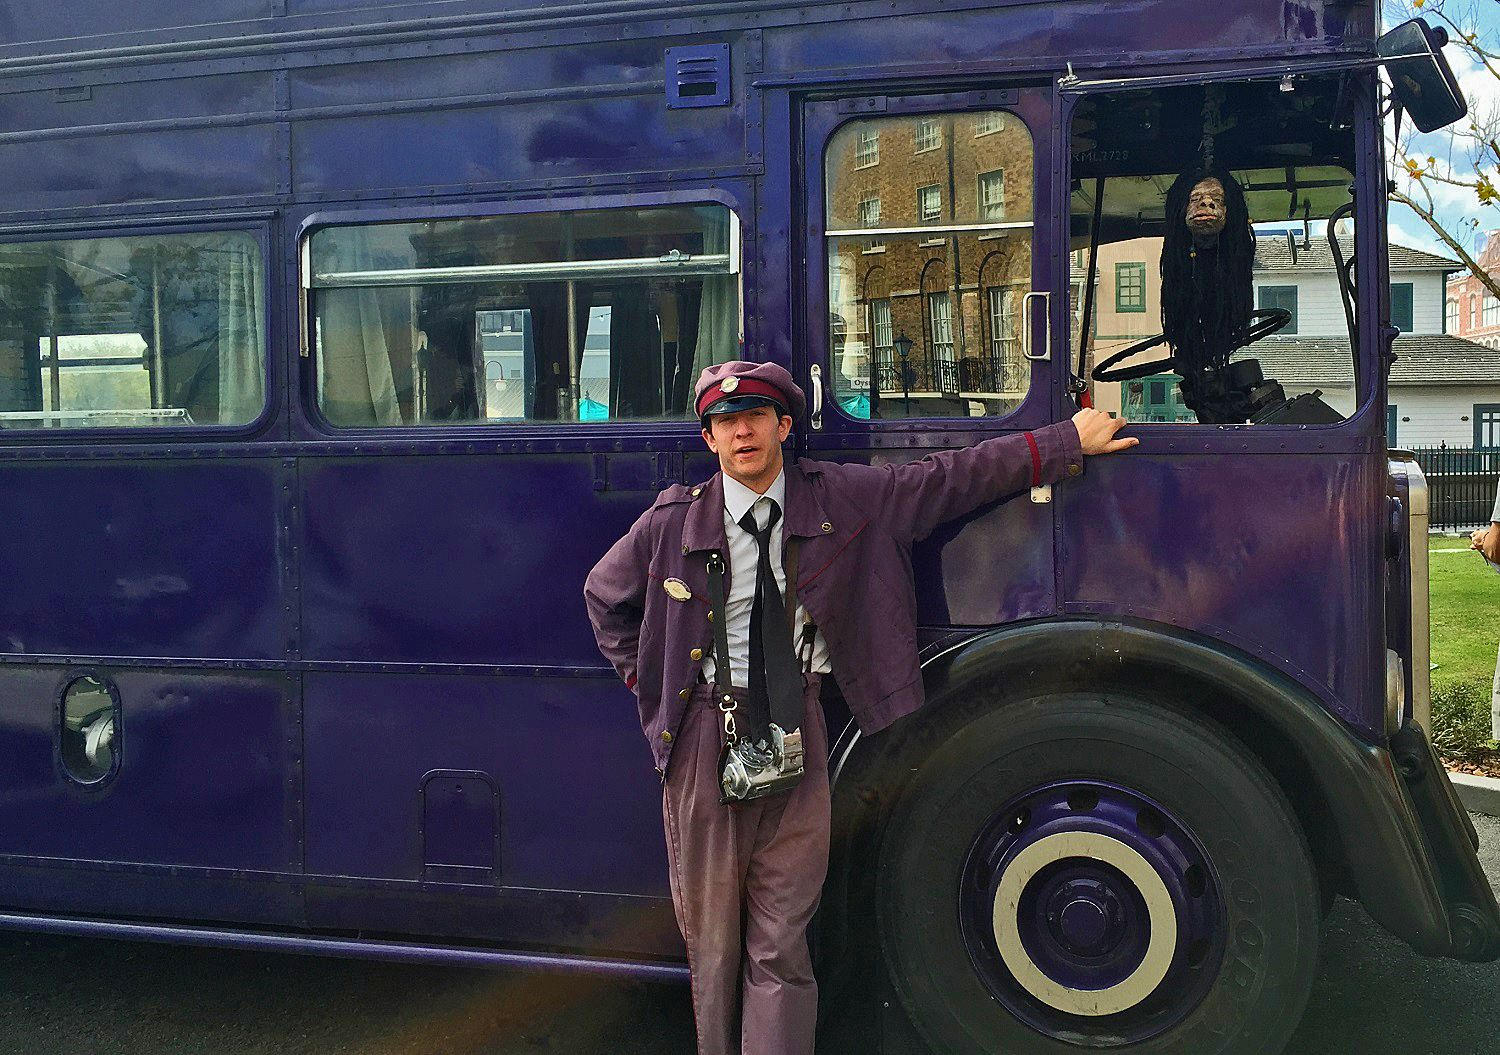 Be sure to interact with the Knight Bus Conductor and the Shrunken Head.